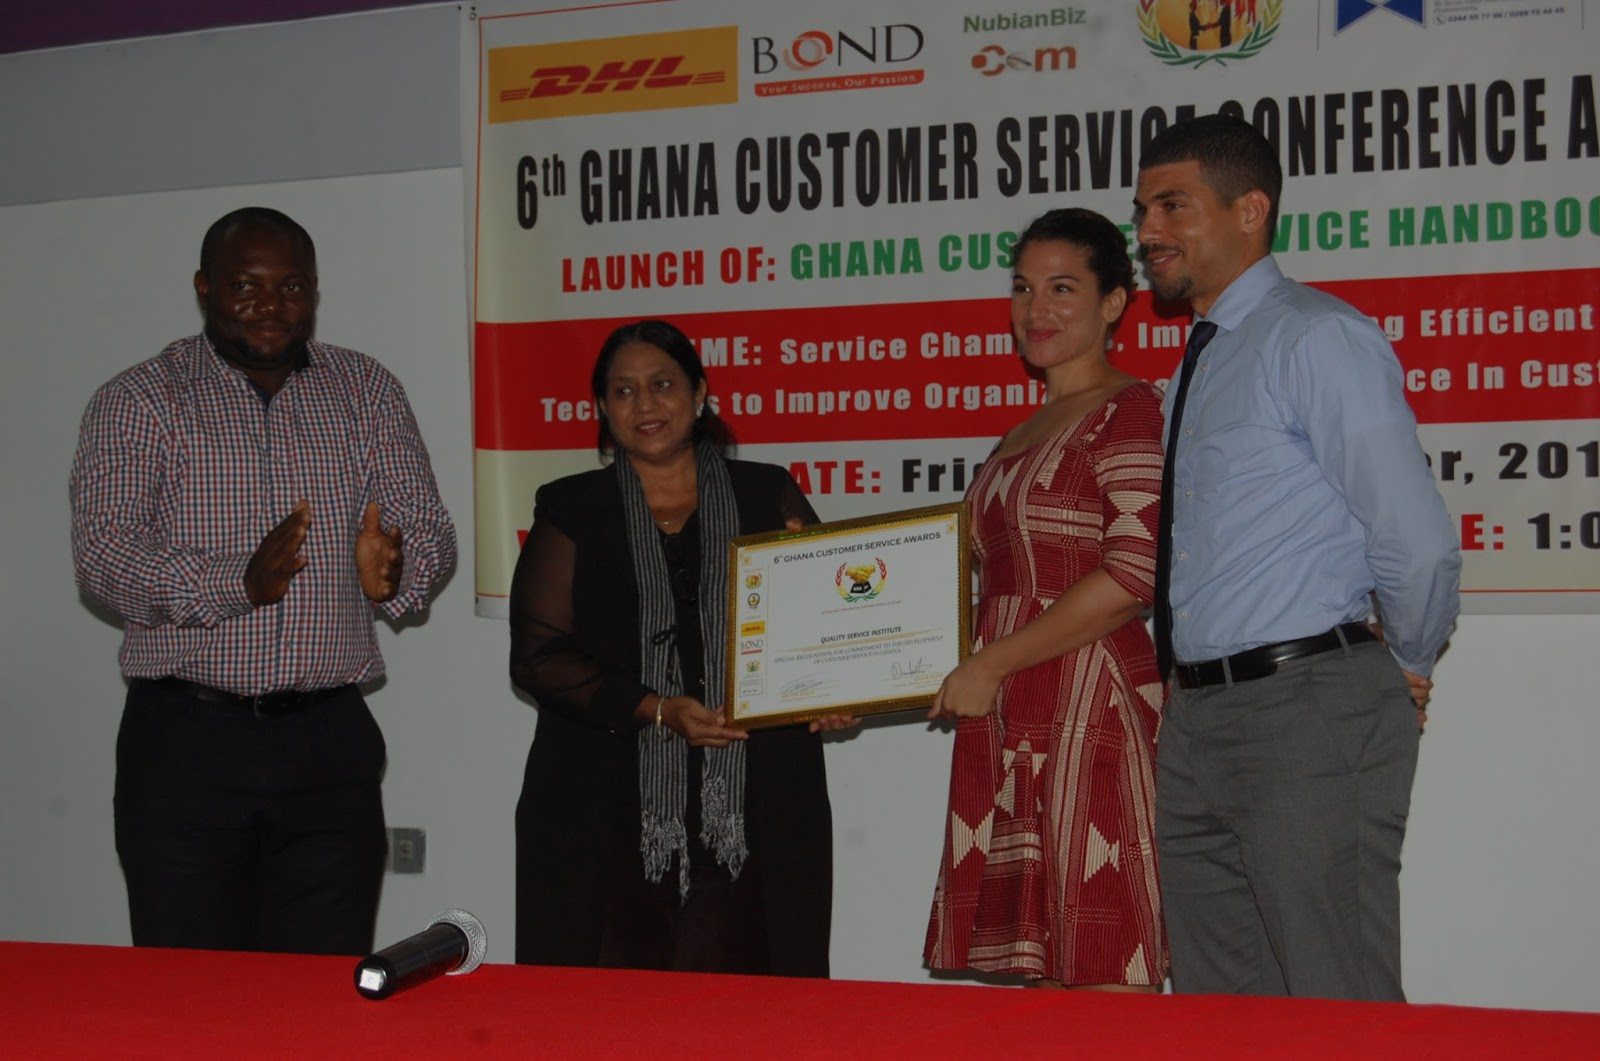 thesis on customer service in ghana The results indicated that there was a certain relationship between service quality and customer satisfaction based on different cultural background in addition, service quality had significantly impacts on customer satisfac.